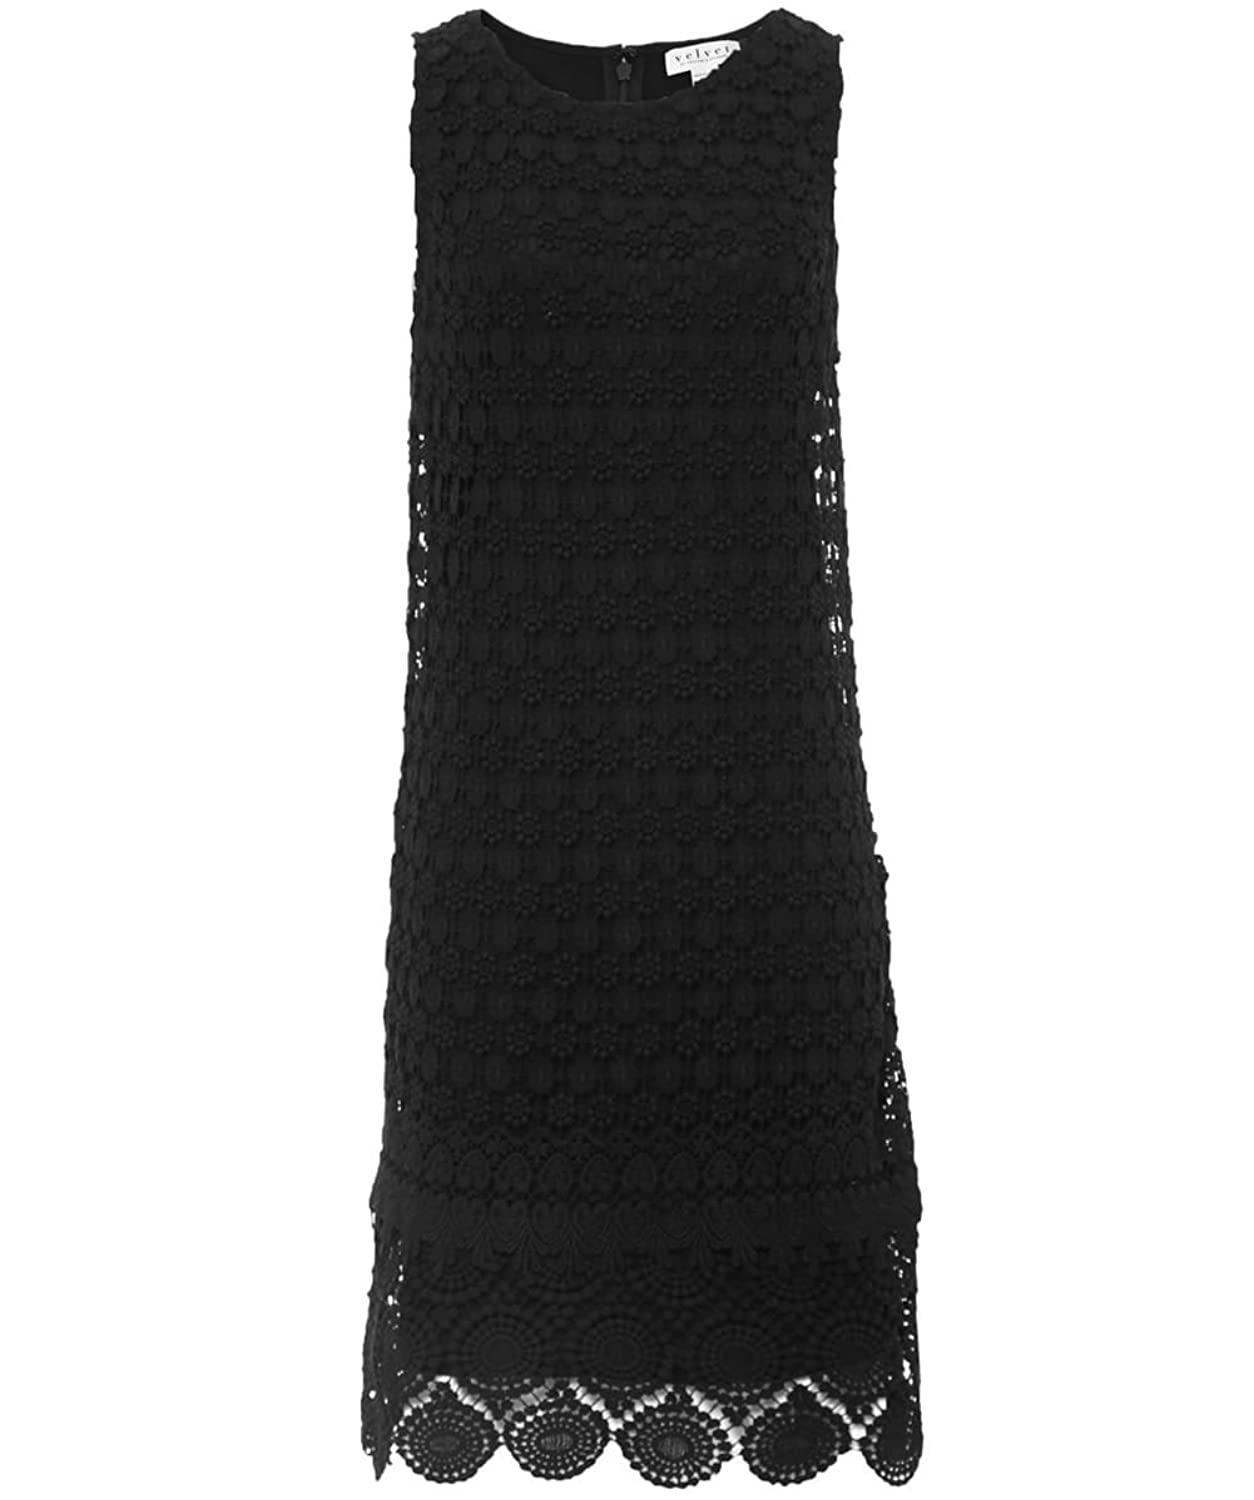 Velvet by Graham & Spencer Cosmo Lace Dress Black